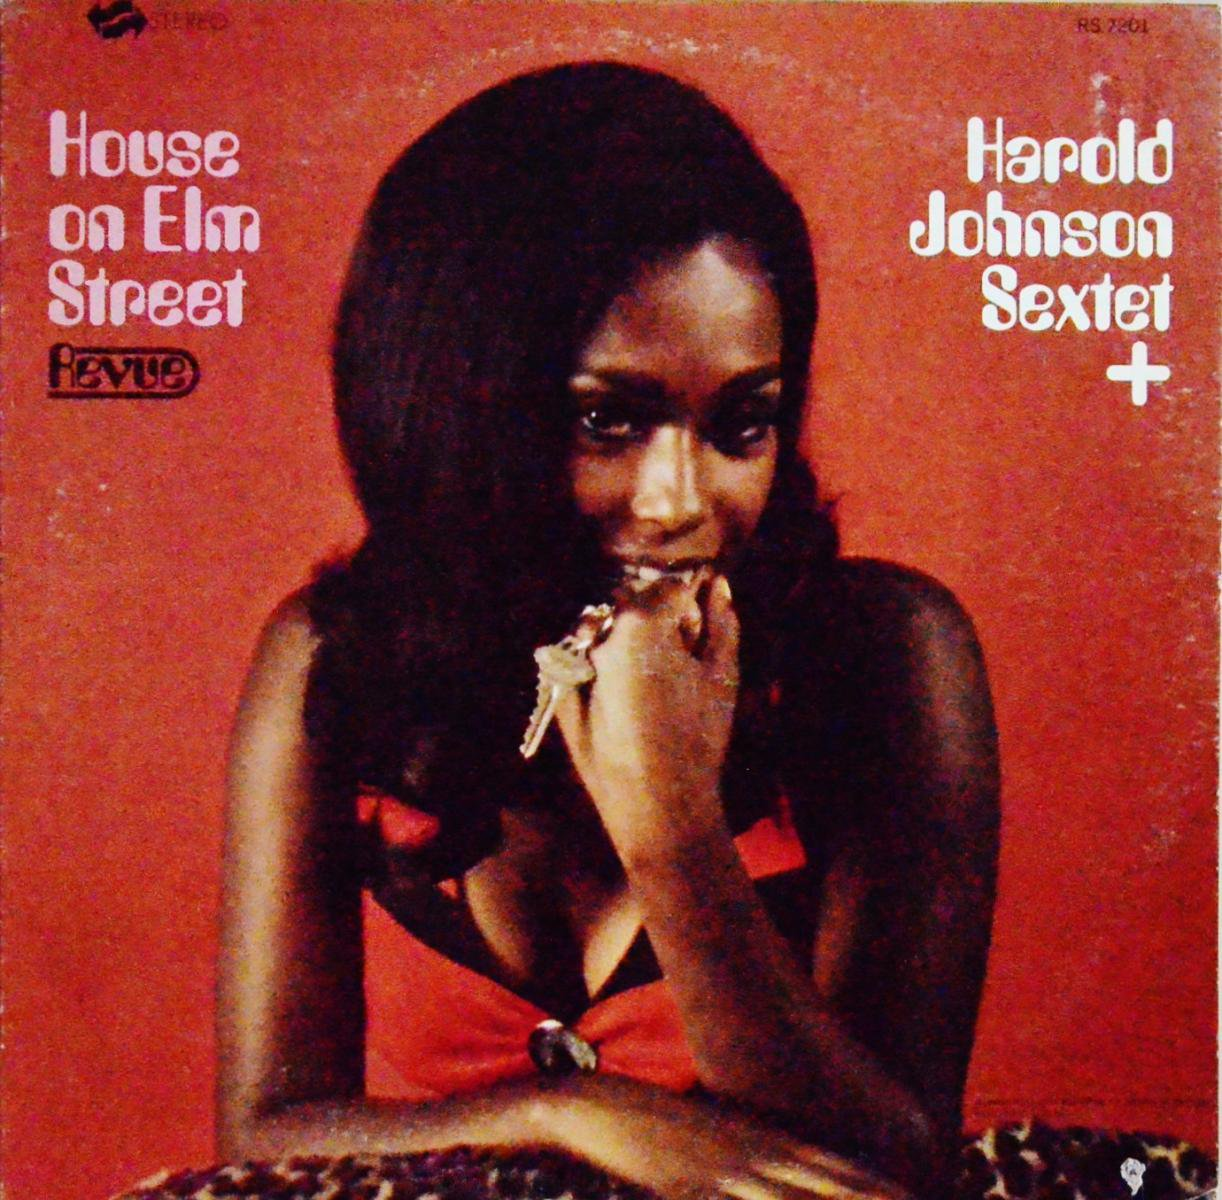 HAROLD JOHNSON SEXTET+ / HOUSE ON ELM STREET (LP)